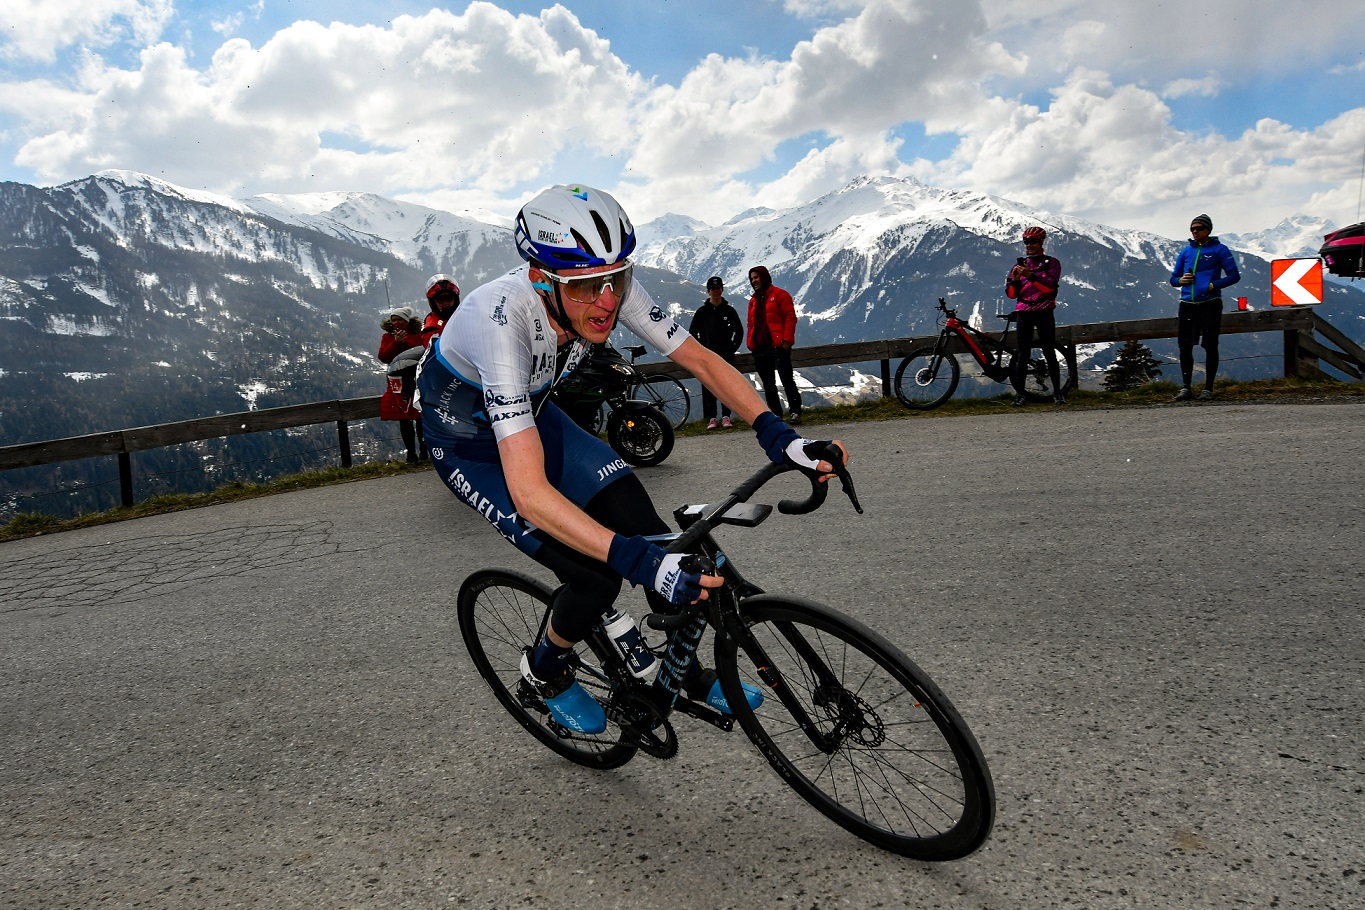 Third place for Dan Martin on stage 2 of Tour of the Alps